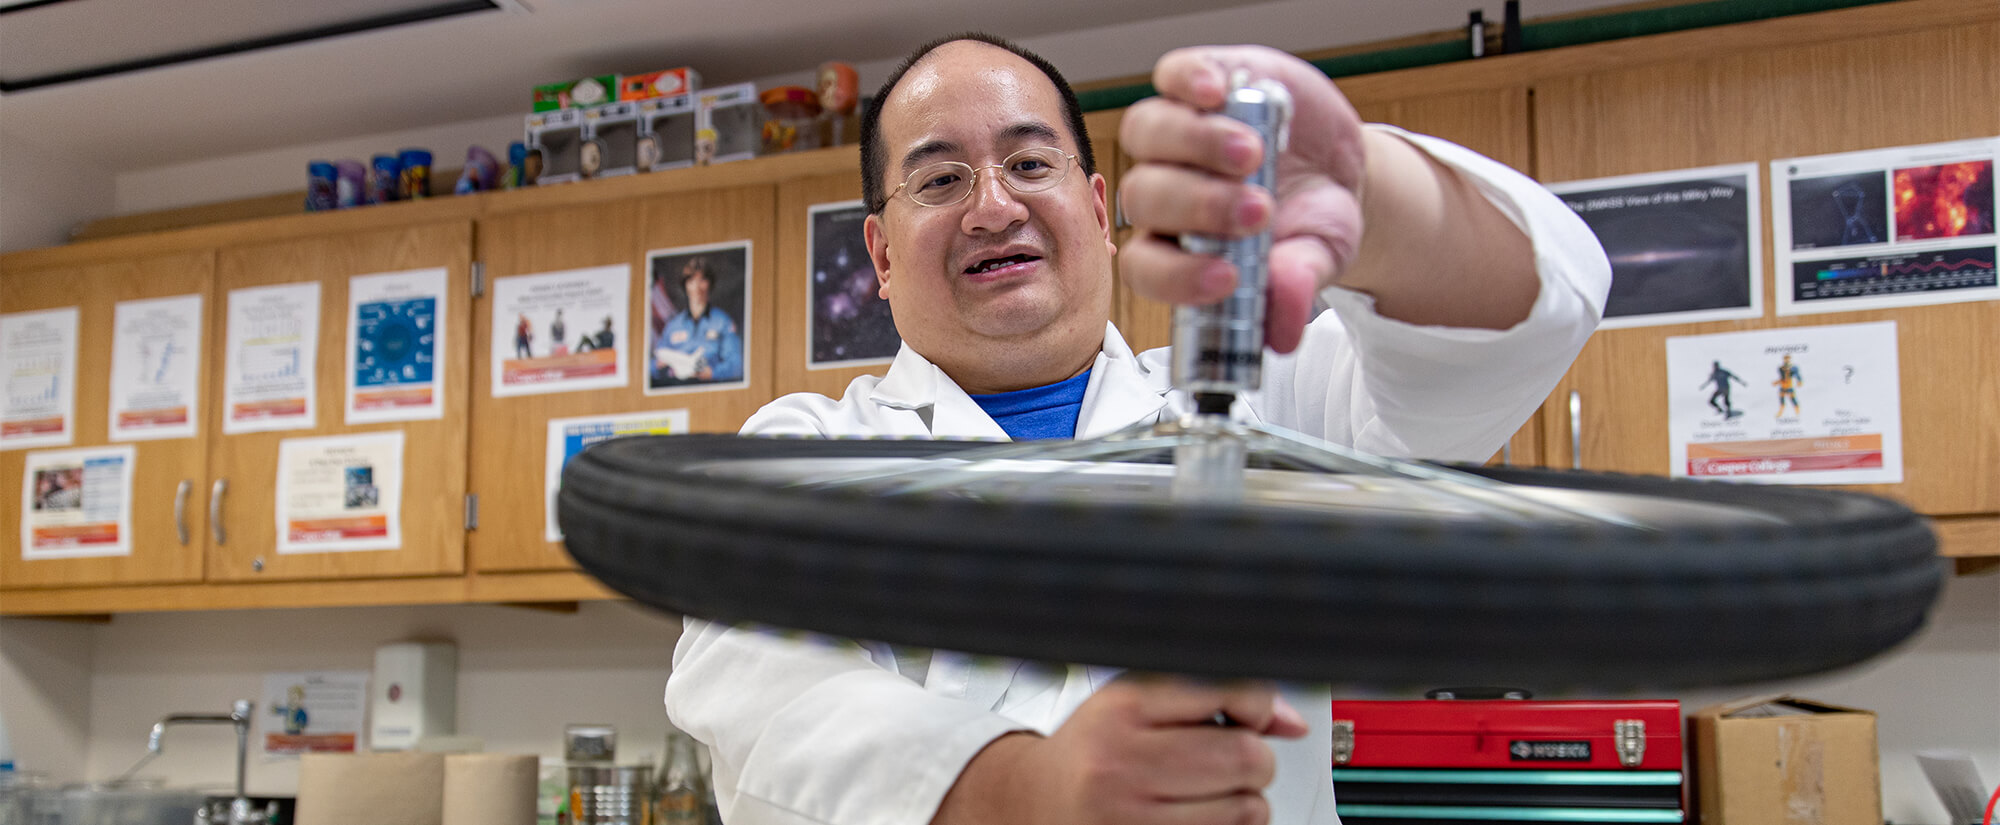 Instructor demonstrates physics related to a bicycle wheel.